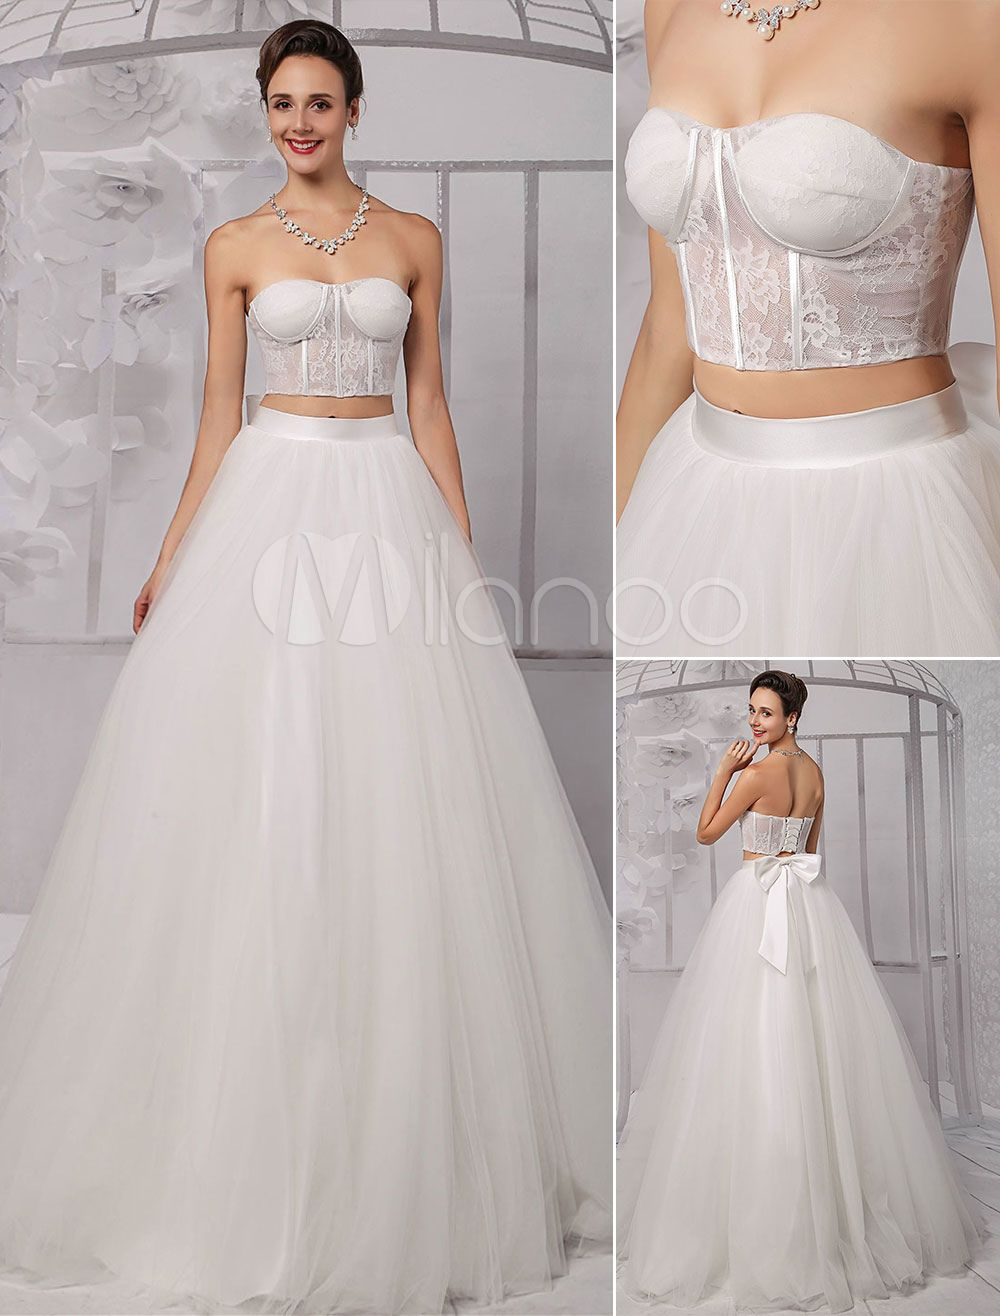 c28ddd7a2a Two-Pieces Strapless Lace Corset Crop Top Ball Gown Wedding Dress With  Tulle Skirt